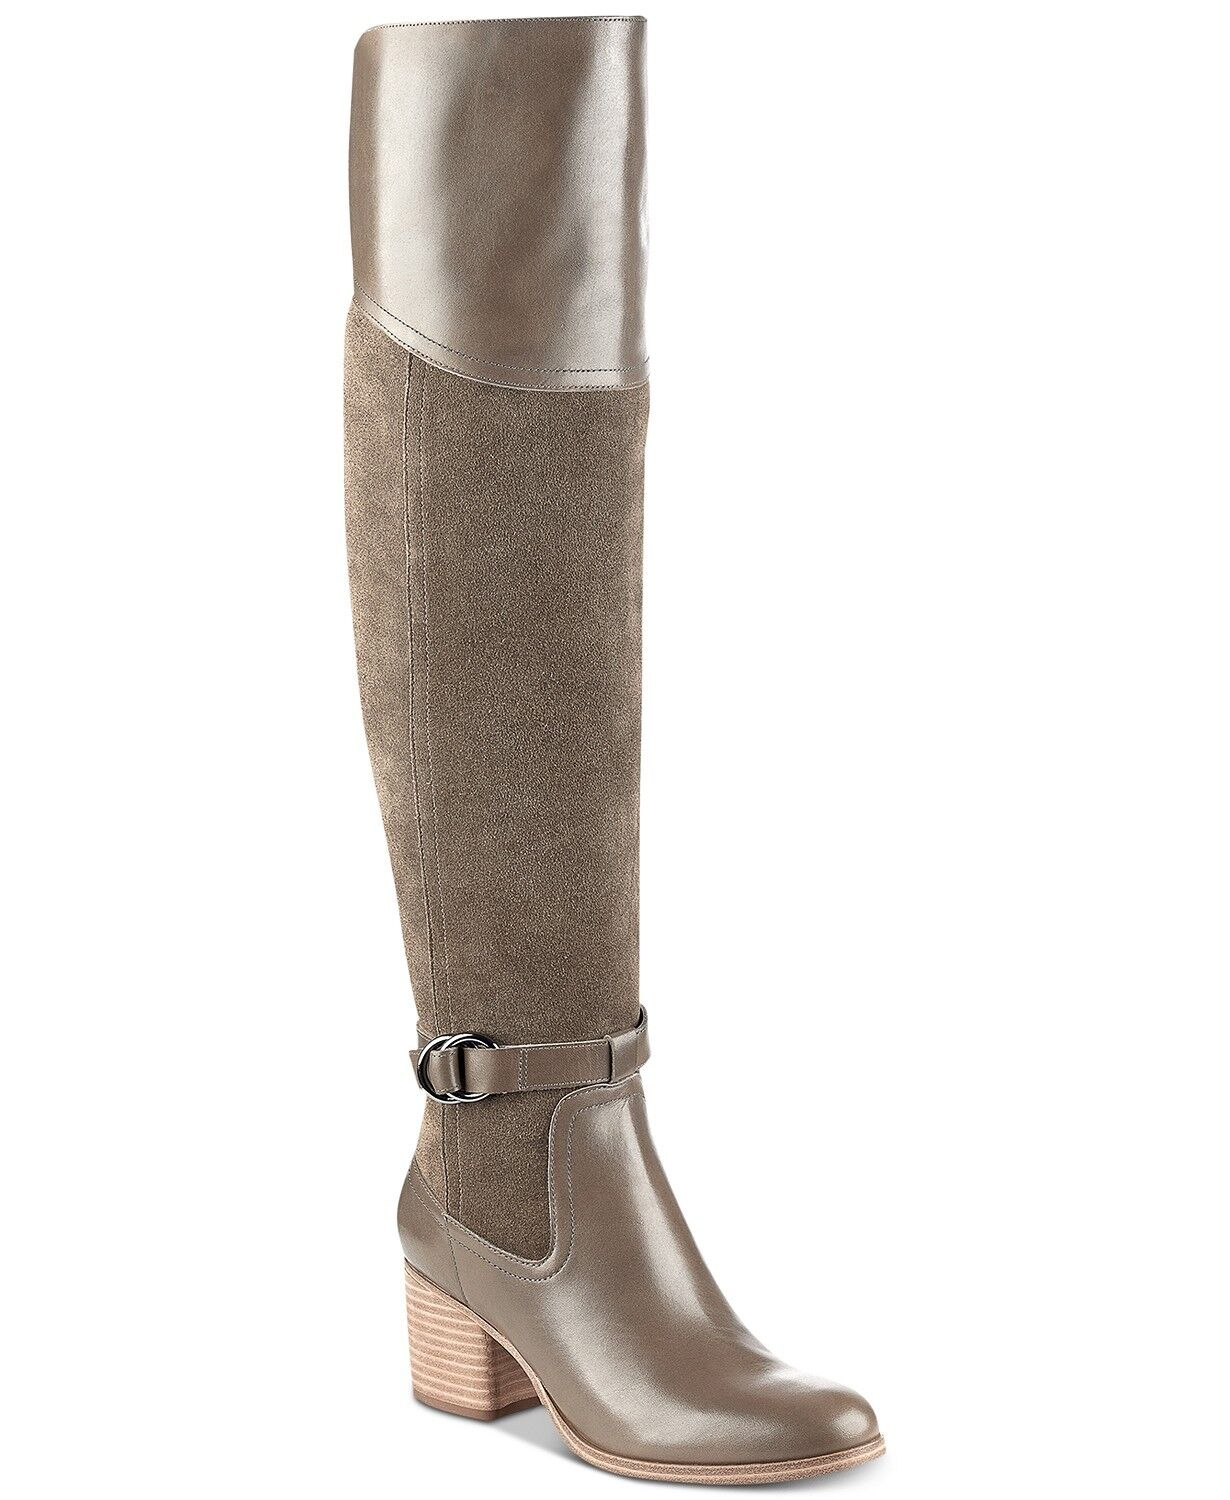 Marc Fisher Eisa Over-The-Knee Block-Heel Stivali Size 6.5 Taupe Retail  189